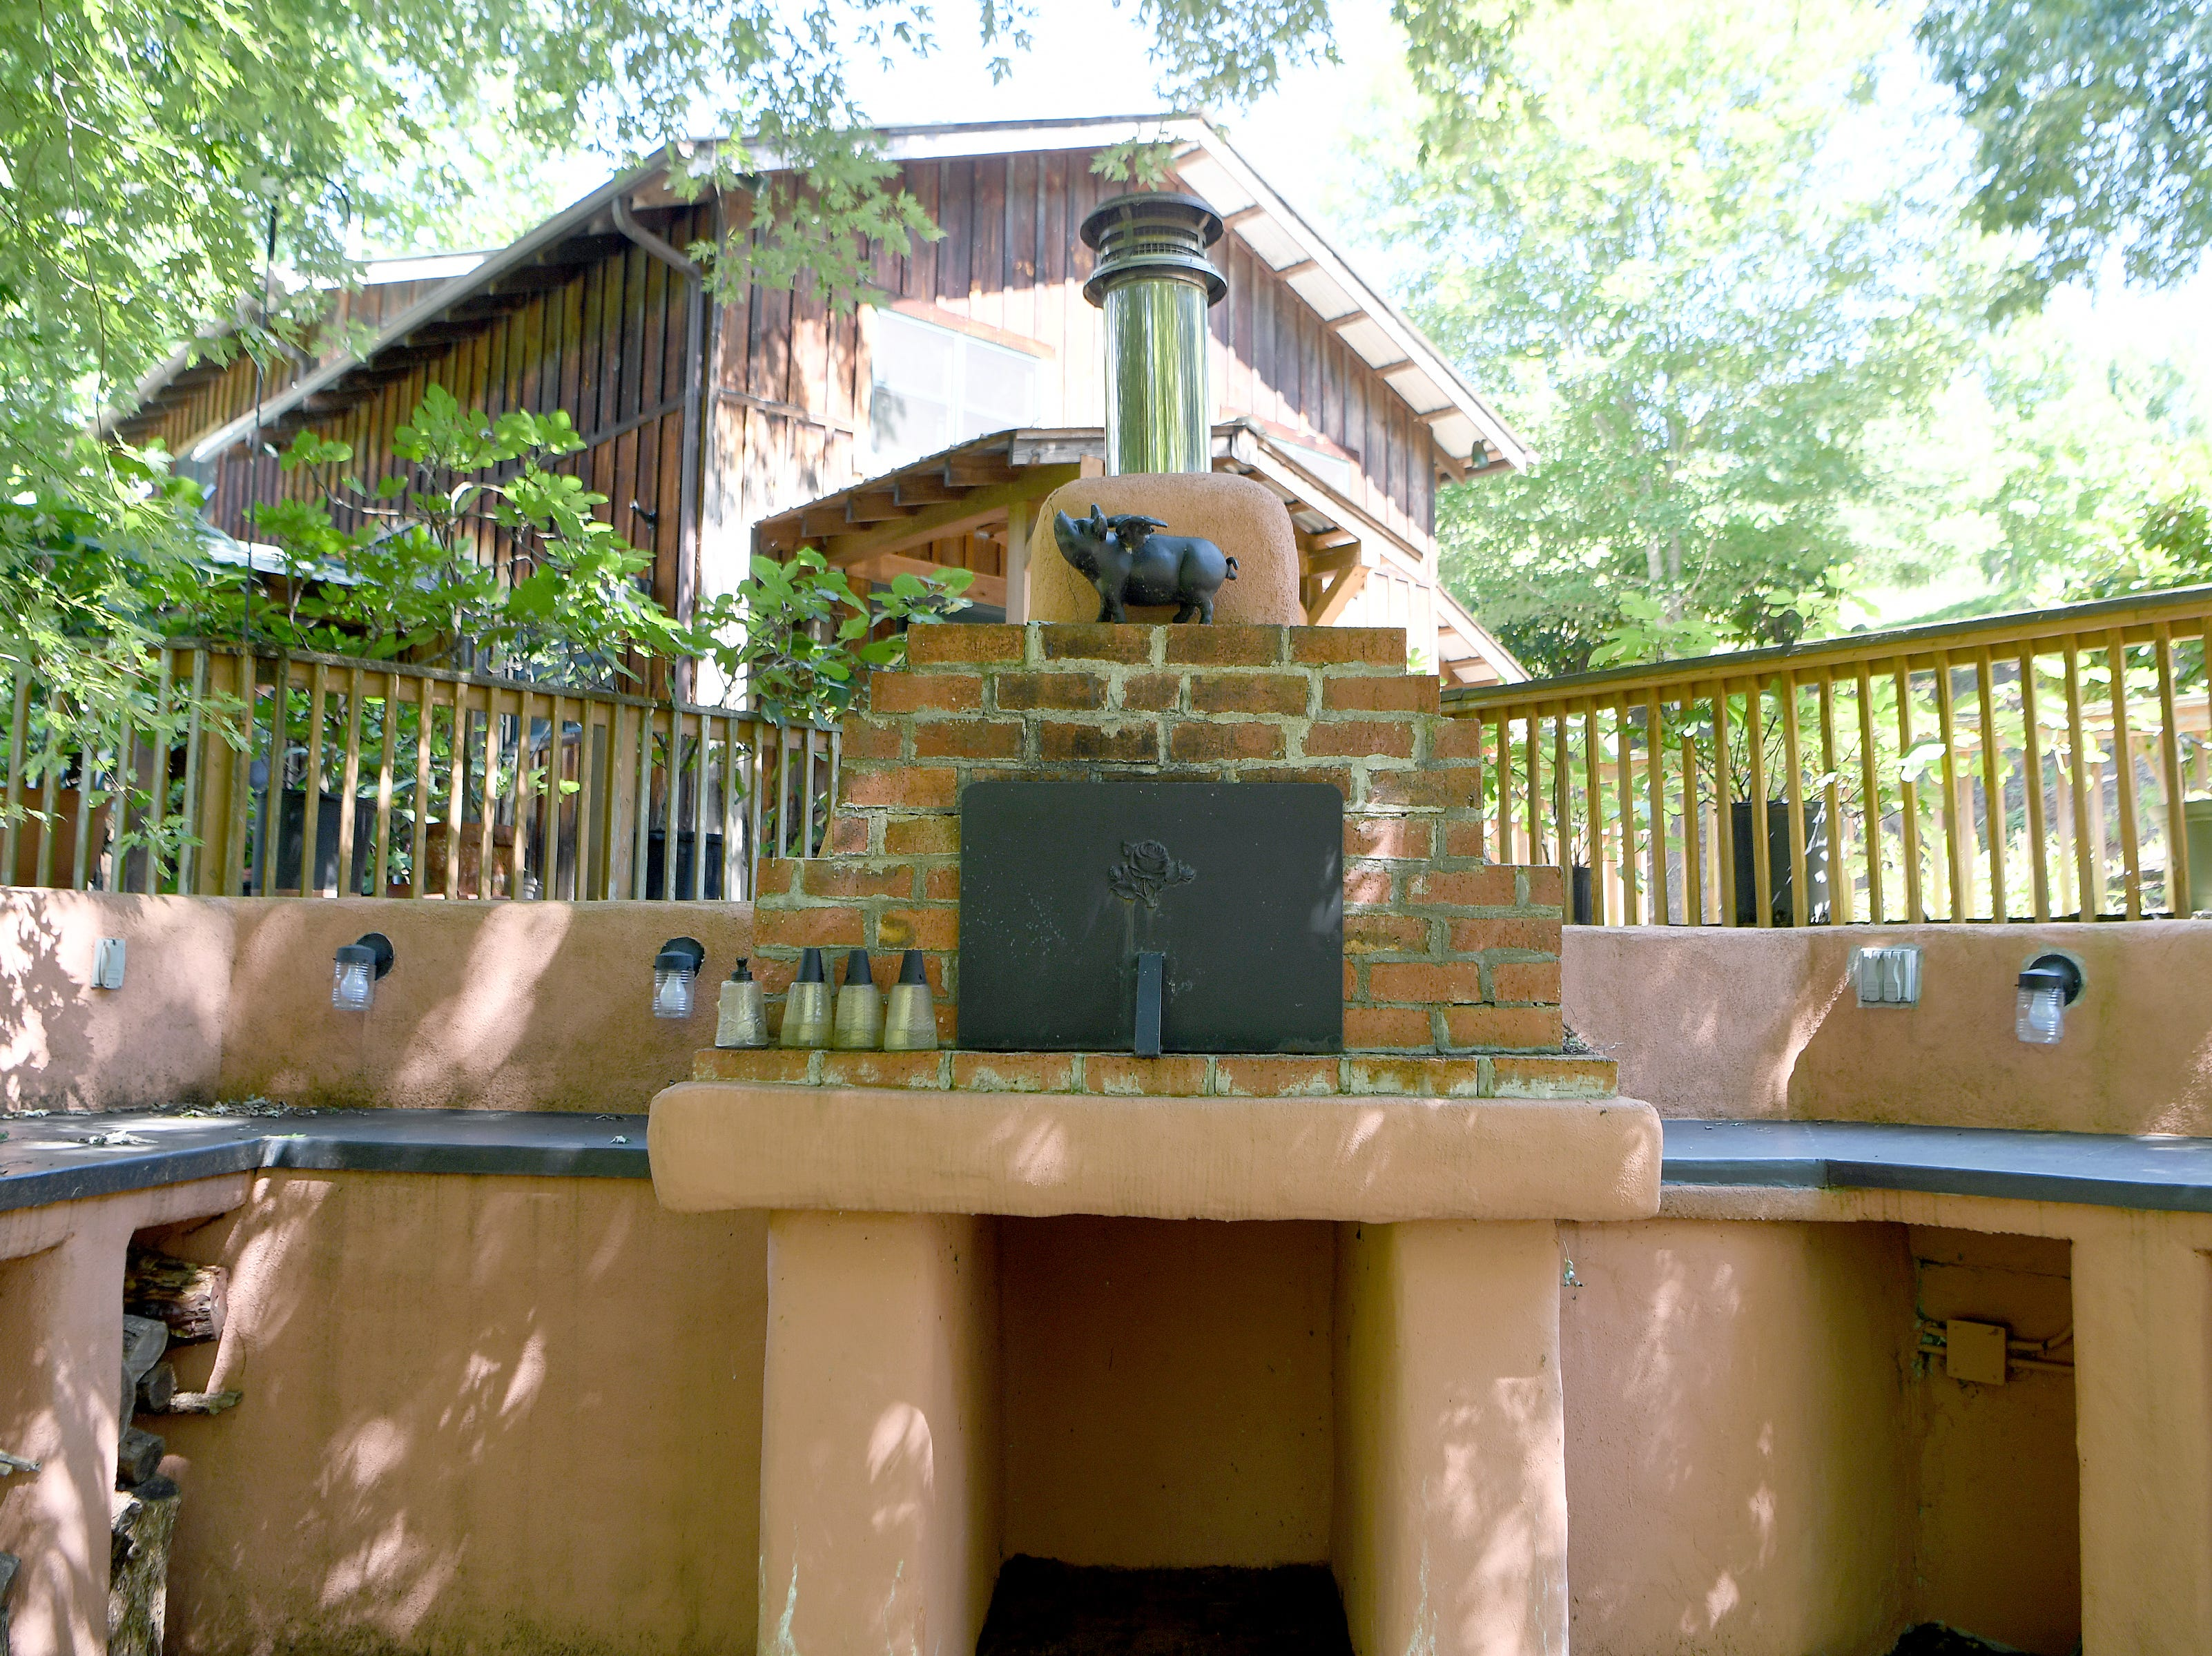 A large outdoor pizza oven at Ricardo Fernandez's main house in Clyde where the chef teaches culinary experiences, including pizza making.